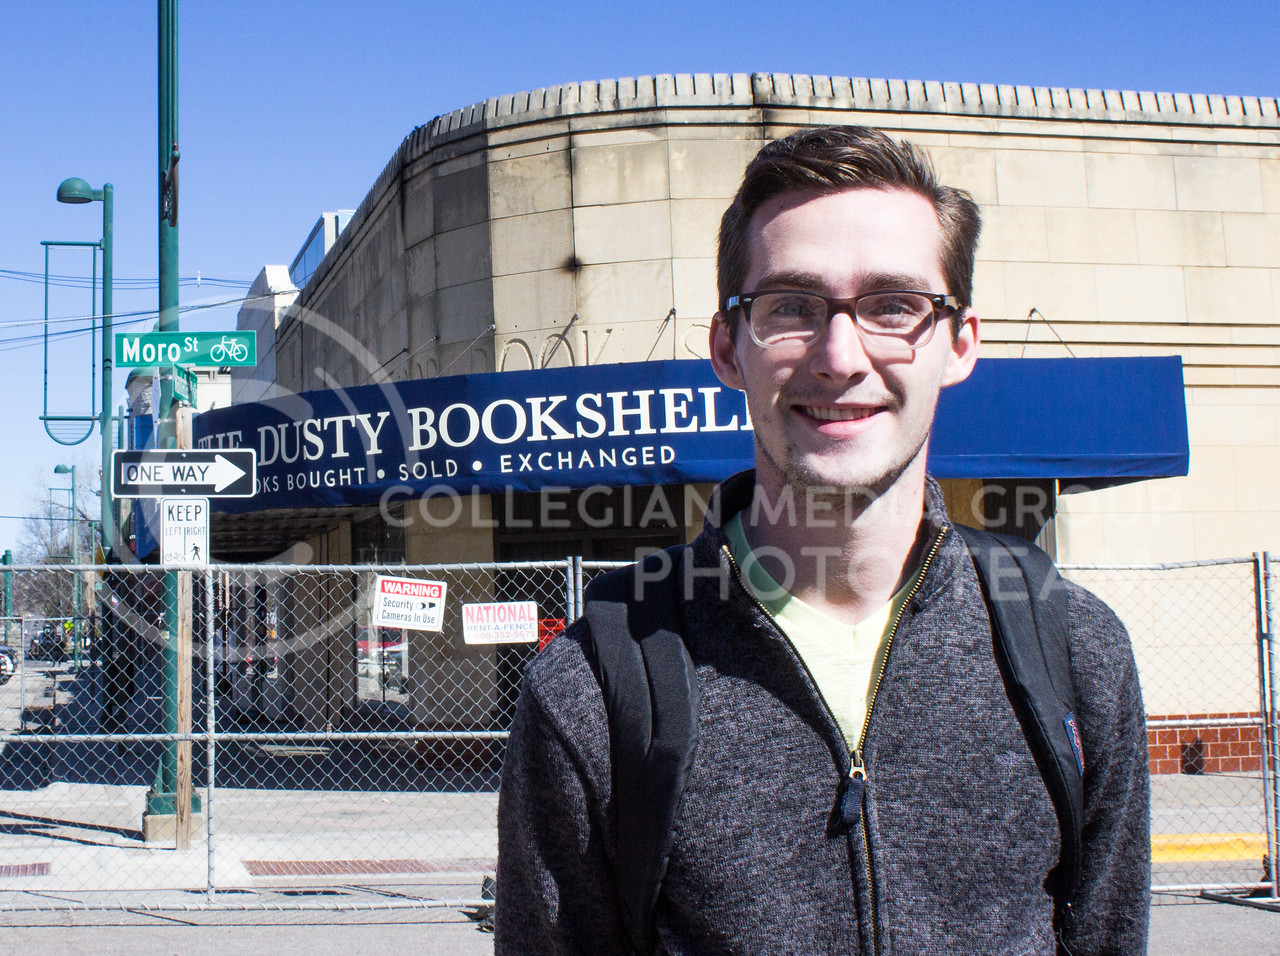 """I love the Dusty Bookshelf. I'm a big reader. I stopped by and looked at the dollar bookshelf everyday so I really miss that part of my walk home."" -Patrick Kenney, senior in political science (Regan Tokos 